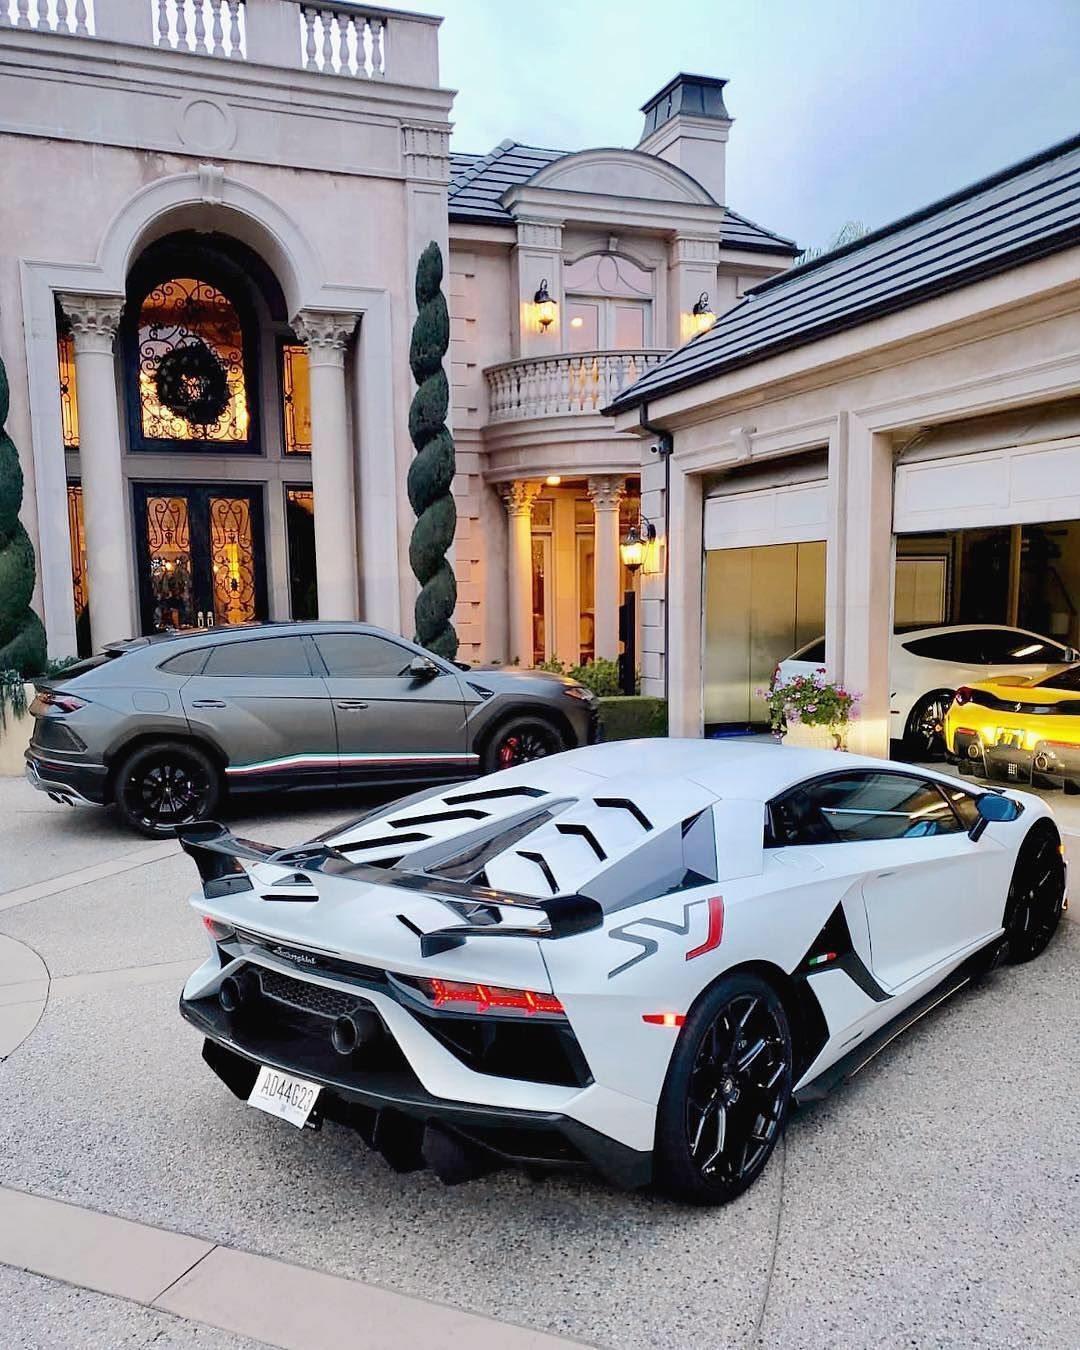 Billionaire Avenues Luxury On Instagram Driveway Goals Who Can Name All 4 Cars Tag Someone That Needs To See Luxury Cars Luxury Dream Cars